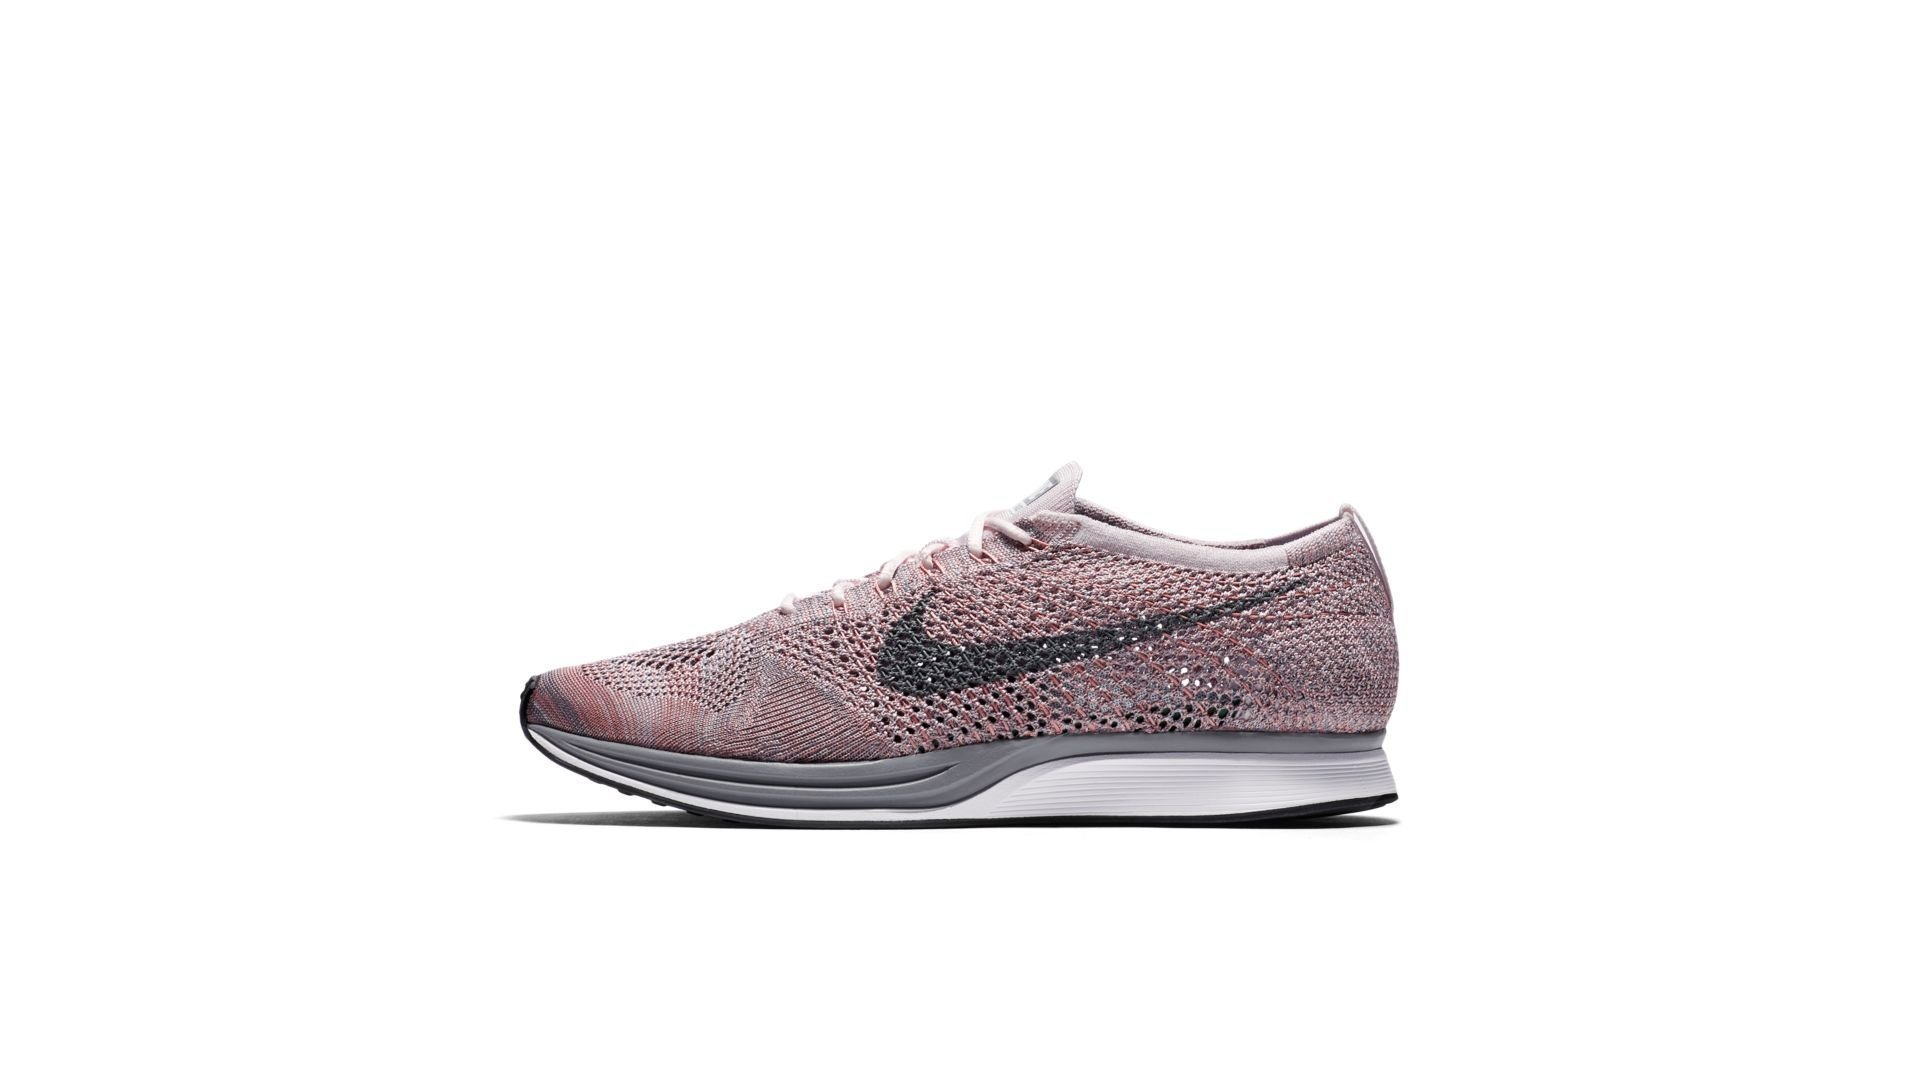 Nike Flyknit Racer Strawberry (526628-604)